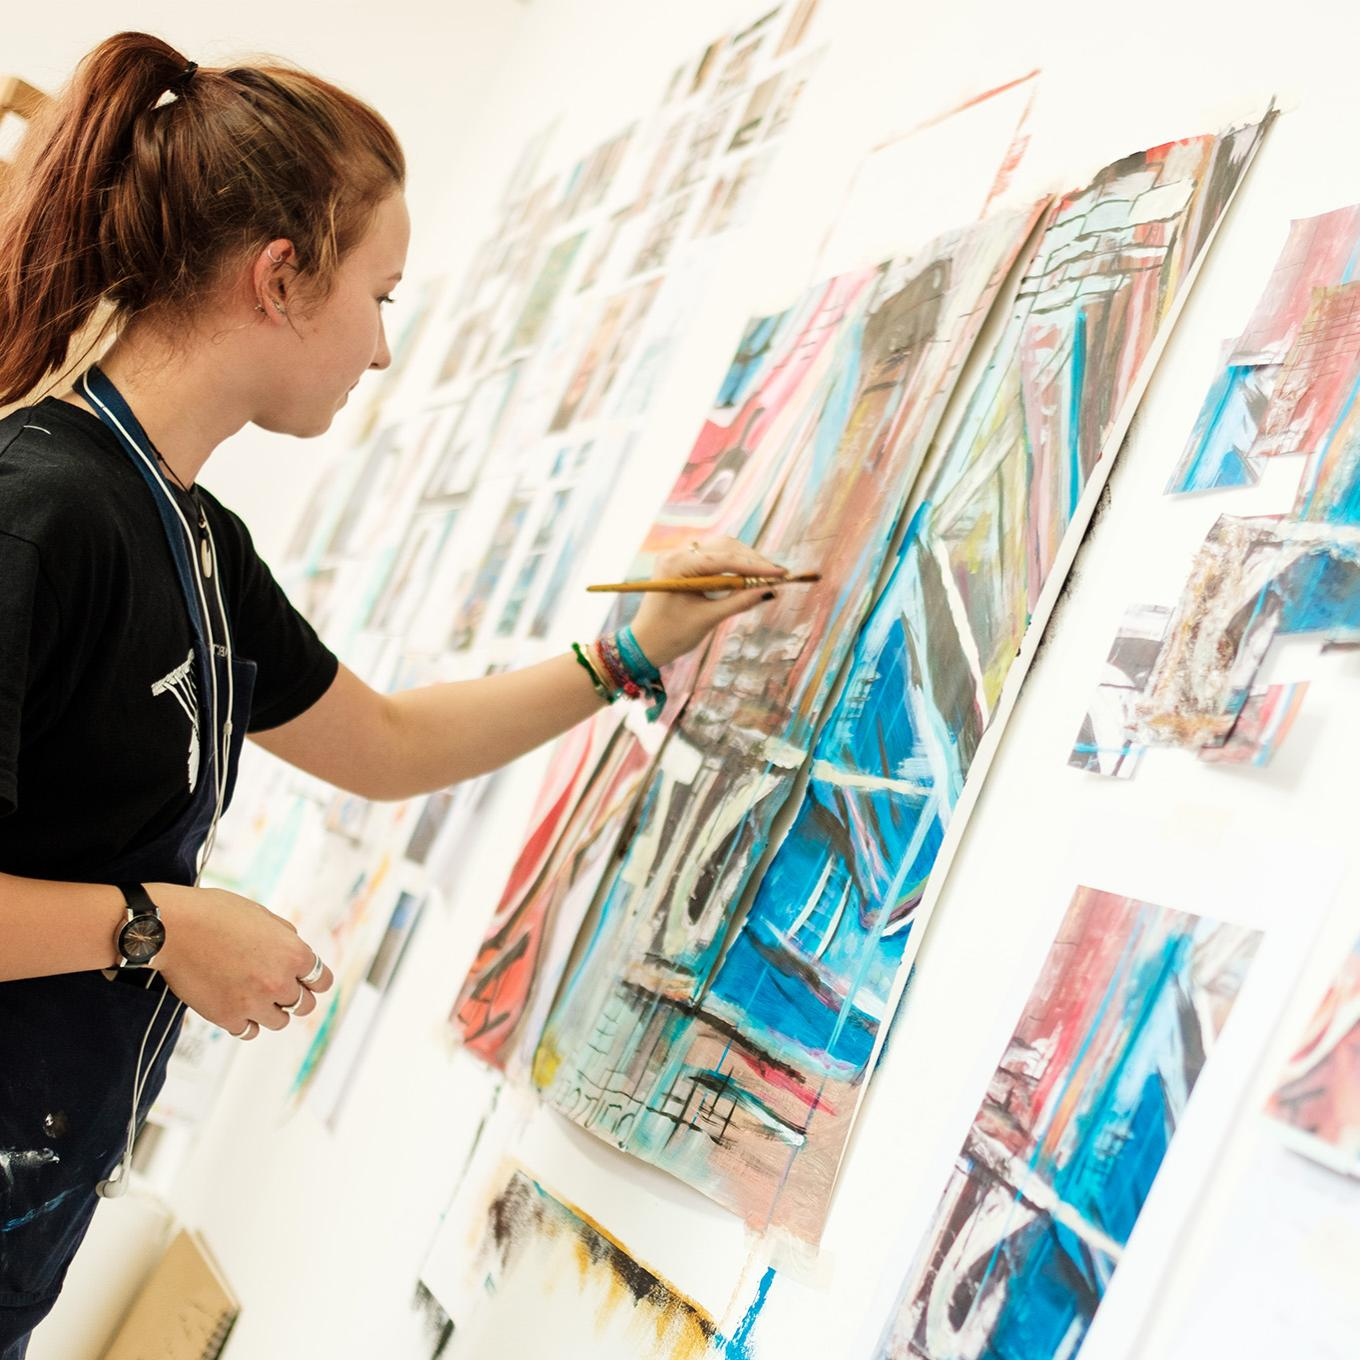 A fine art student paints the finishing touches onto her work